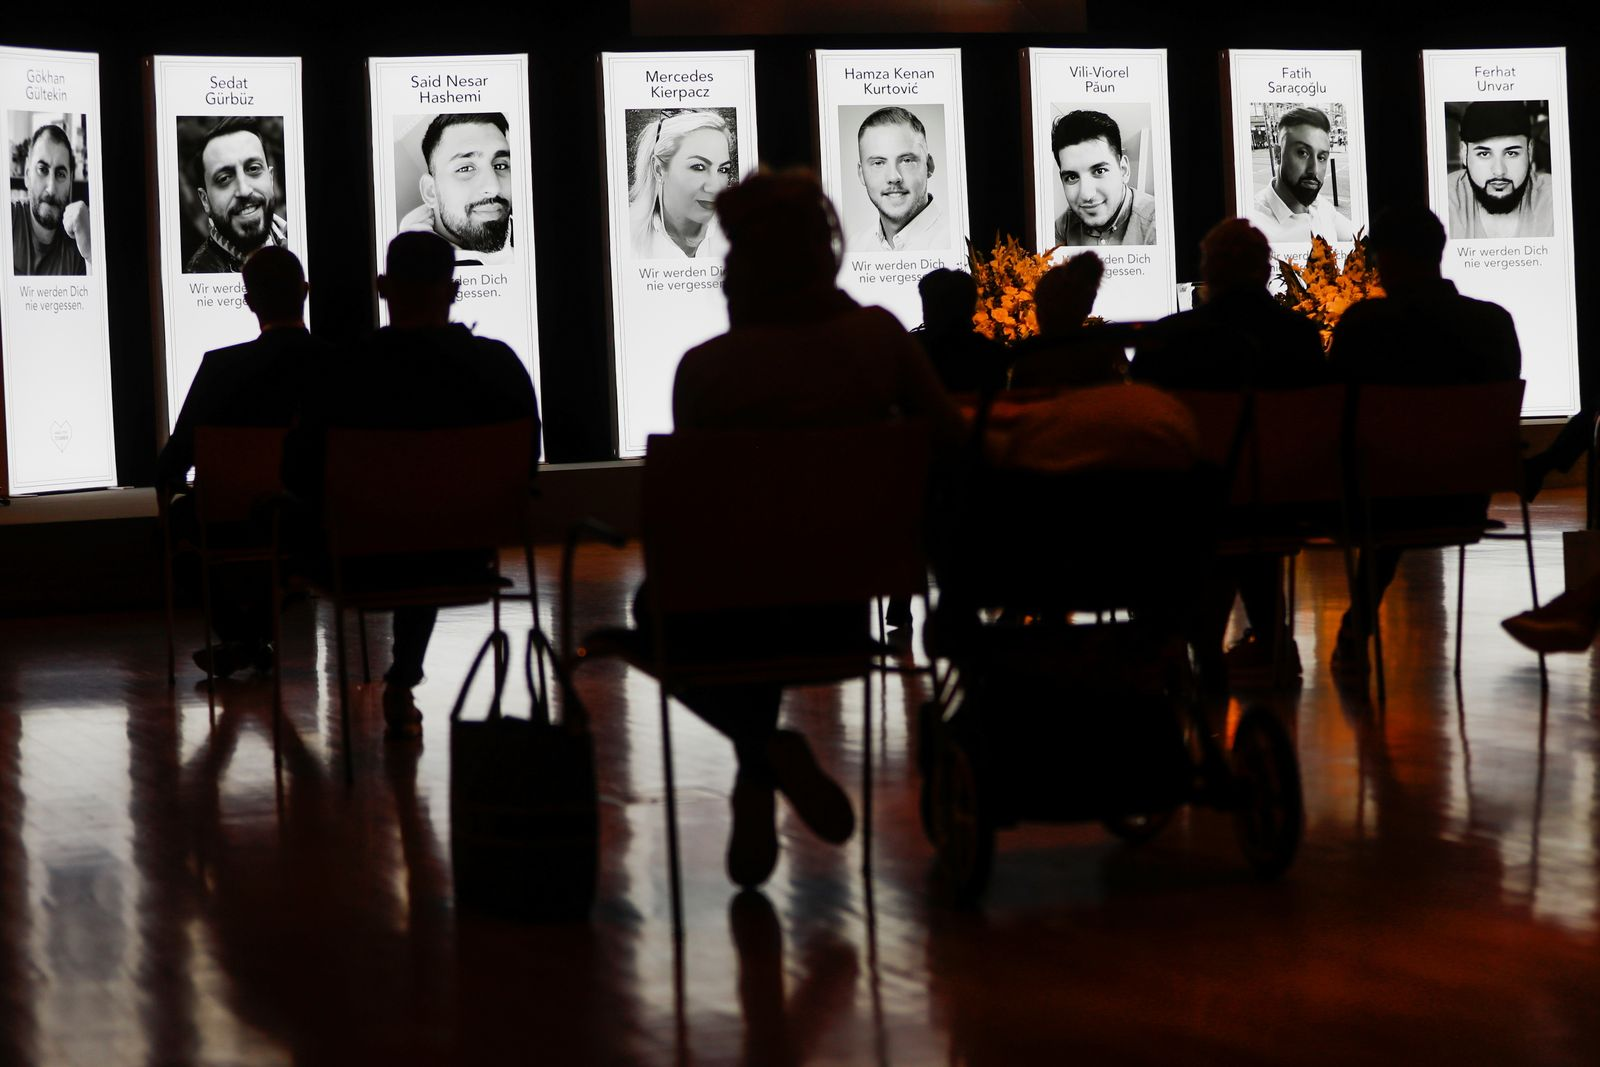 Hanau commemorates victims one year after shooting